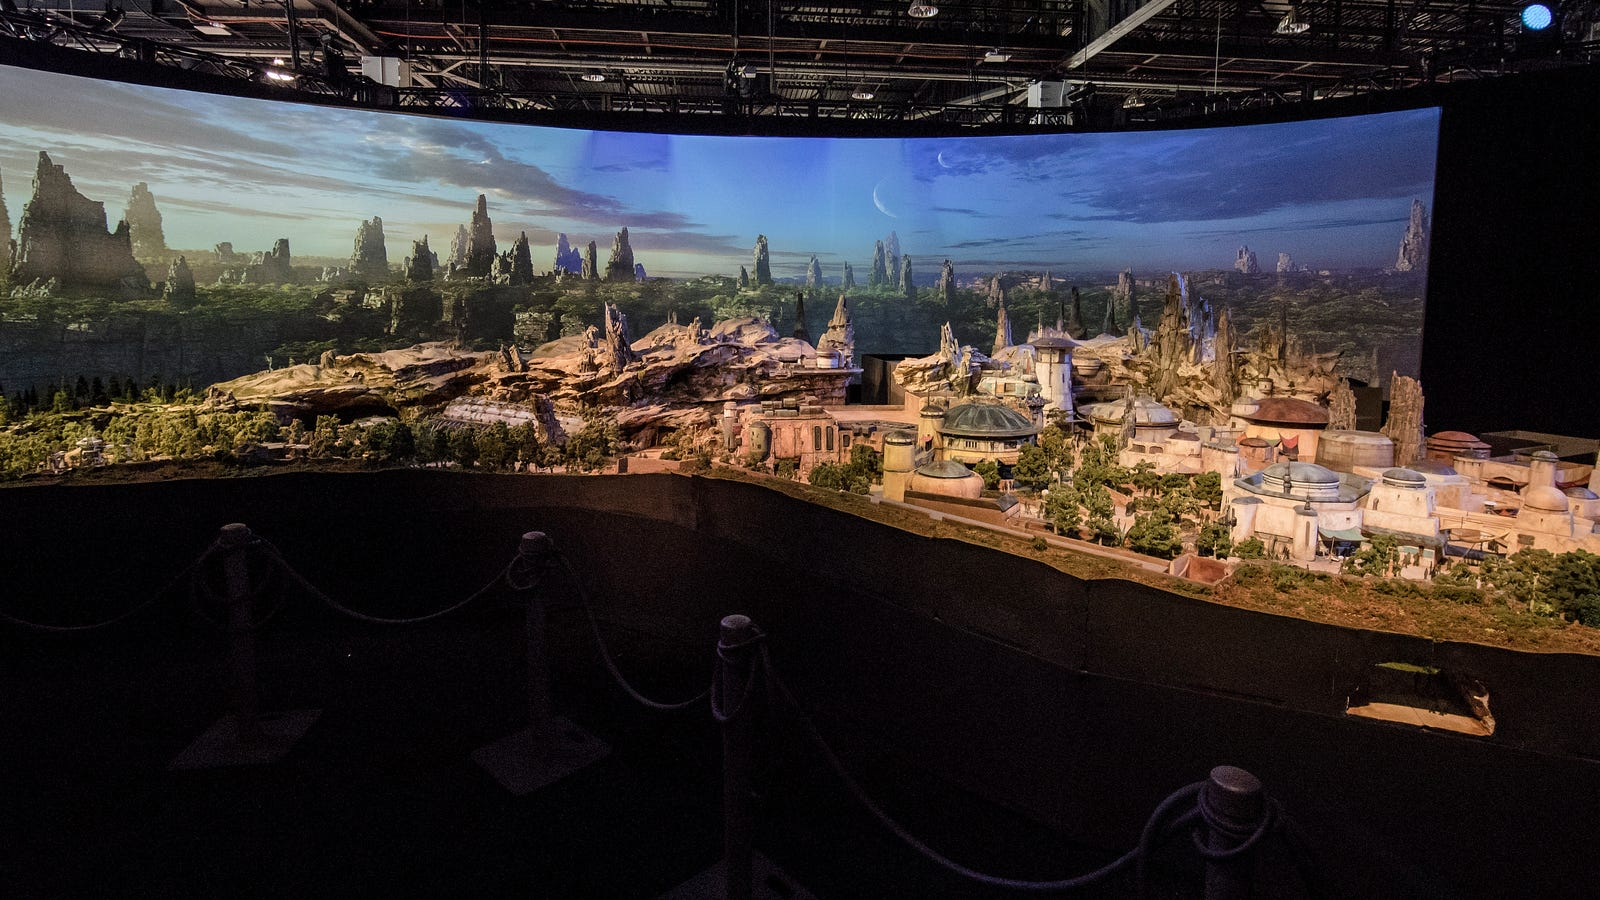 Here's Your First Look at an Insanely Detailed Model of Disney's Star Wars Land (UPDATED)